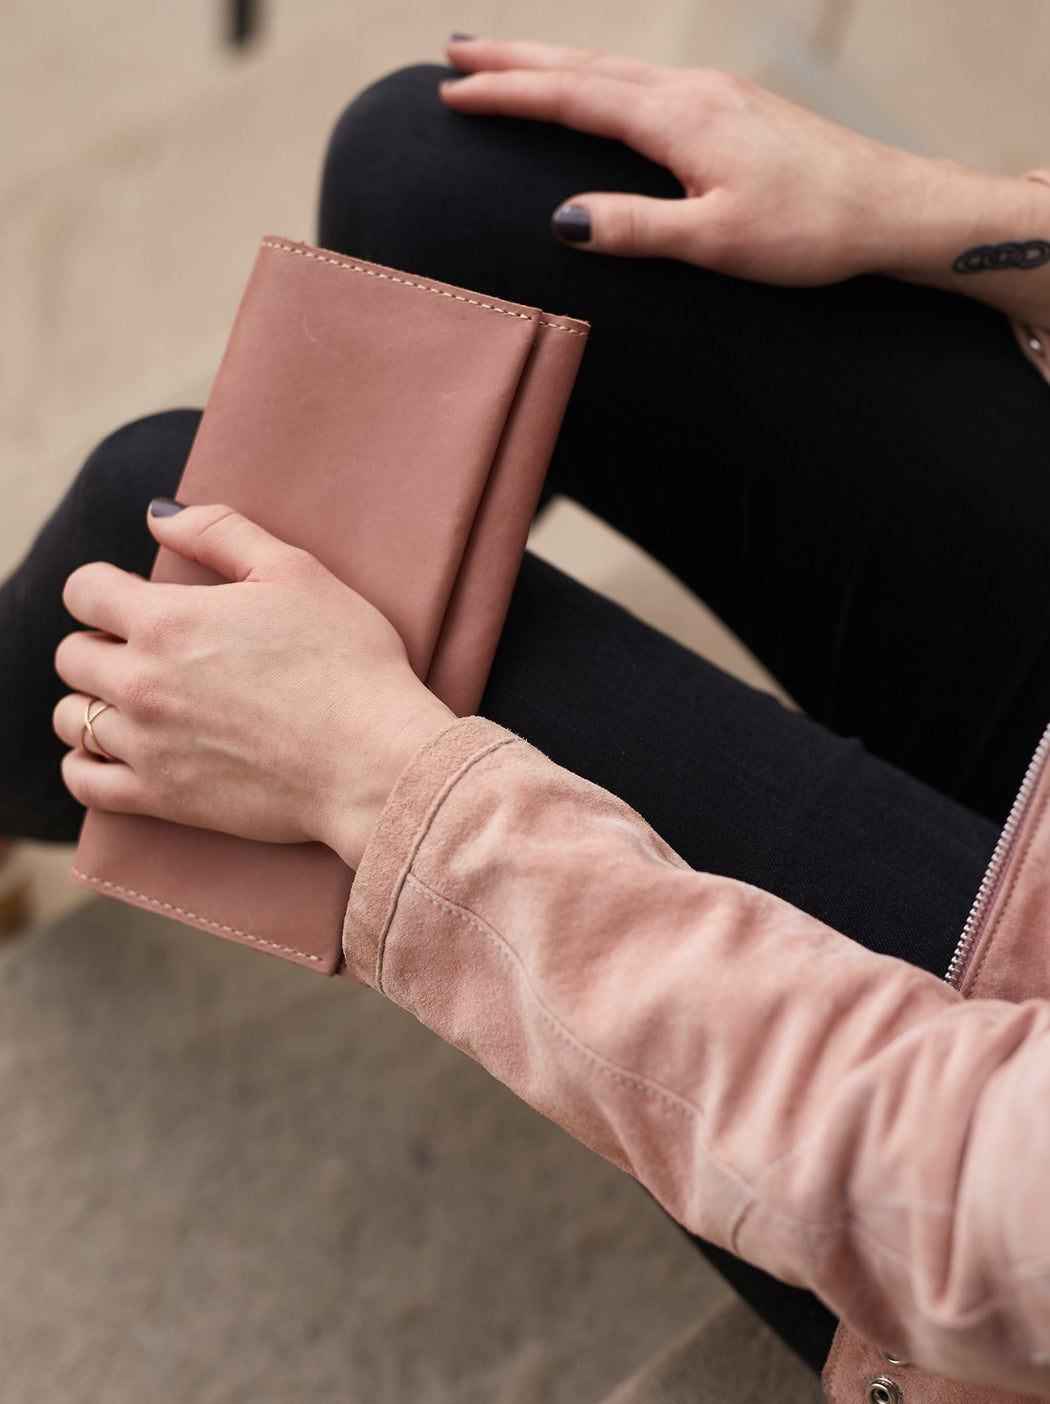 Debre Minimal Wallet - Dusty Rose Gingerly Witty